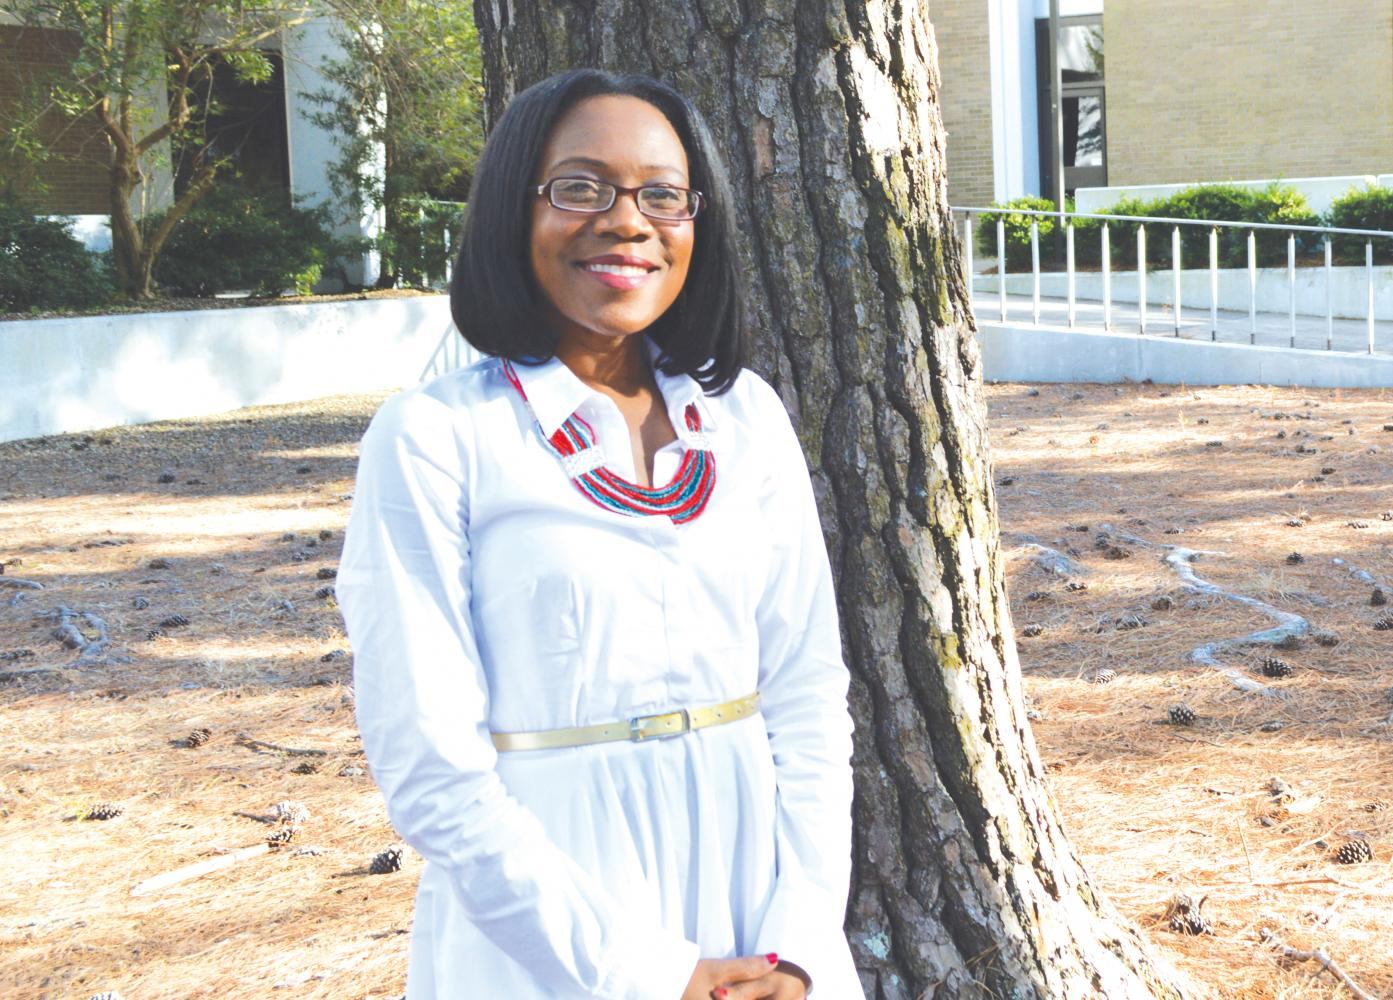 Dr. Erica James is a psychology professor at FMU. James plans to conduct a research project studying the use of FMU mental health services by minority students.